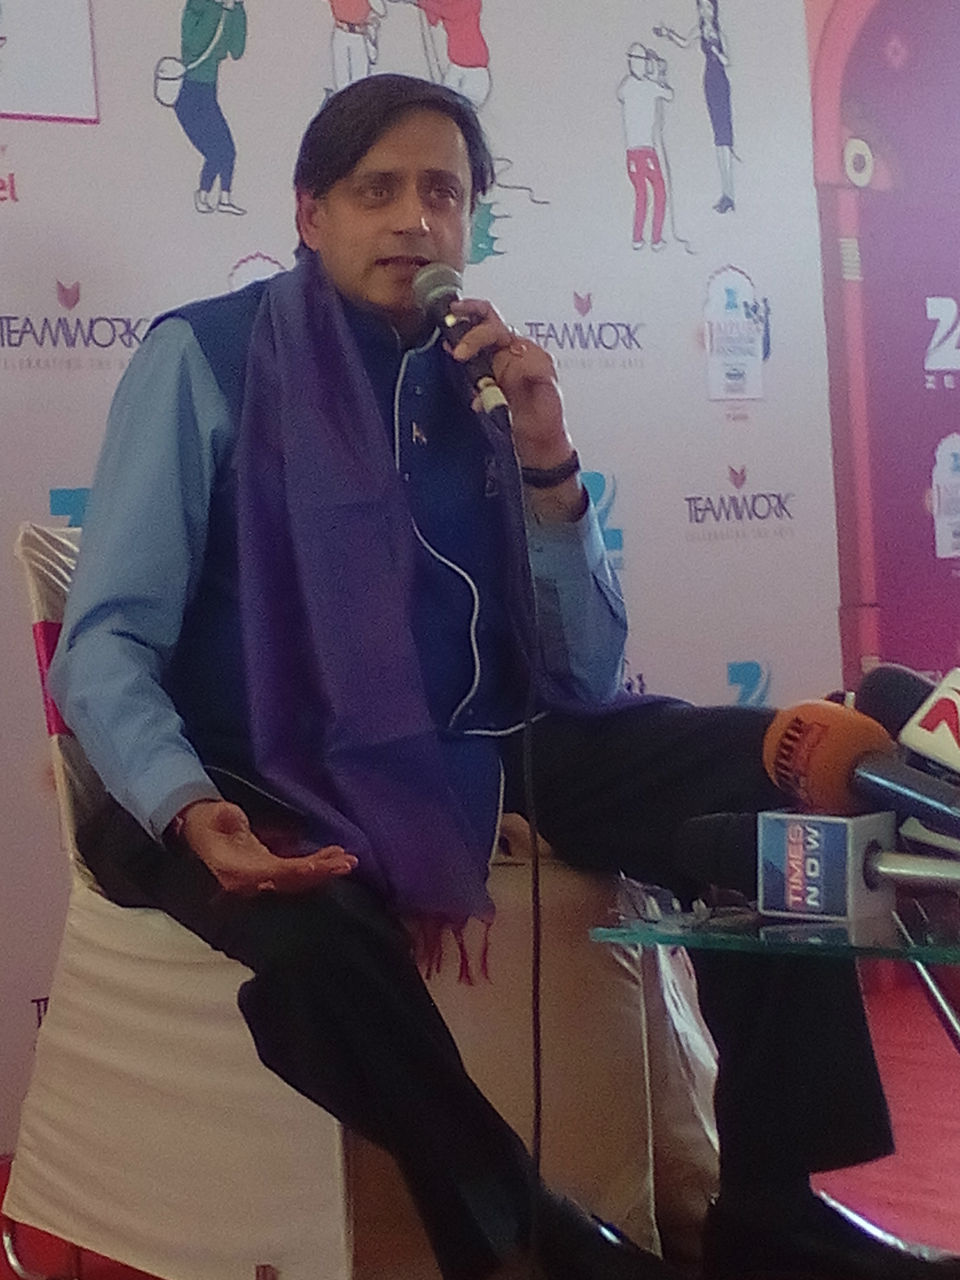 Congress leader Shashi Tharoor addressing a press conference at ther Jaipur Literature Festival